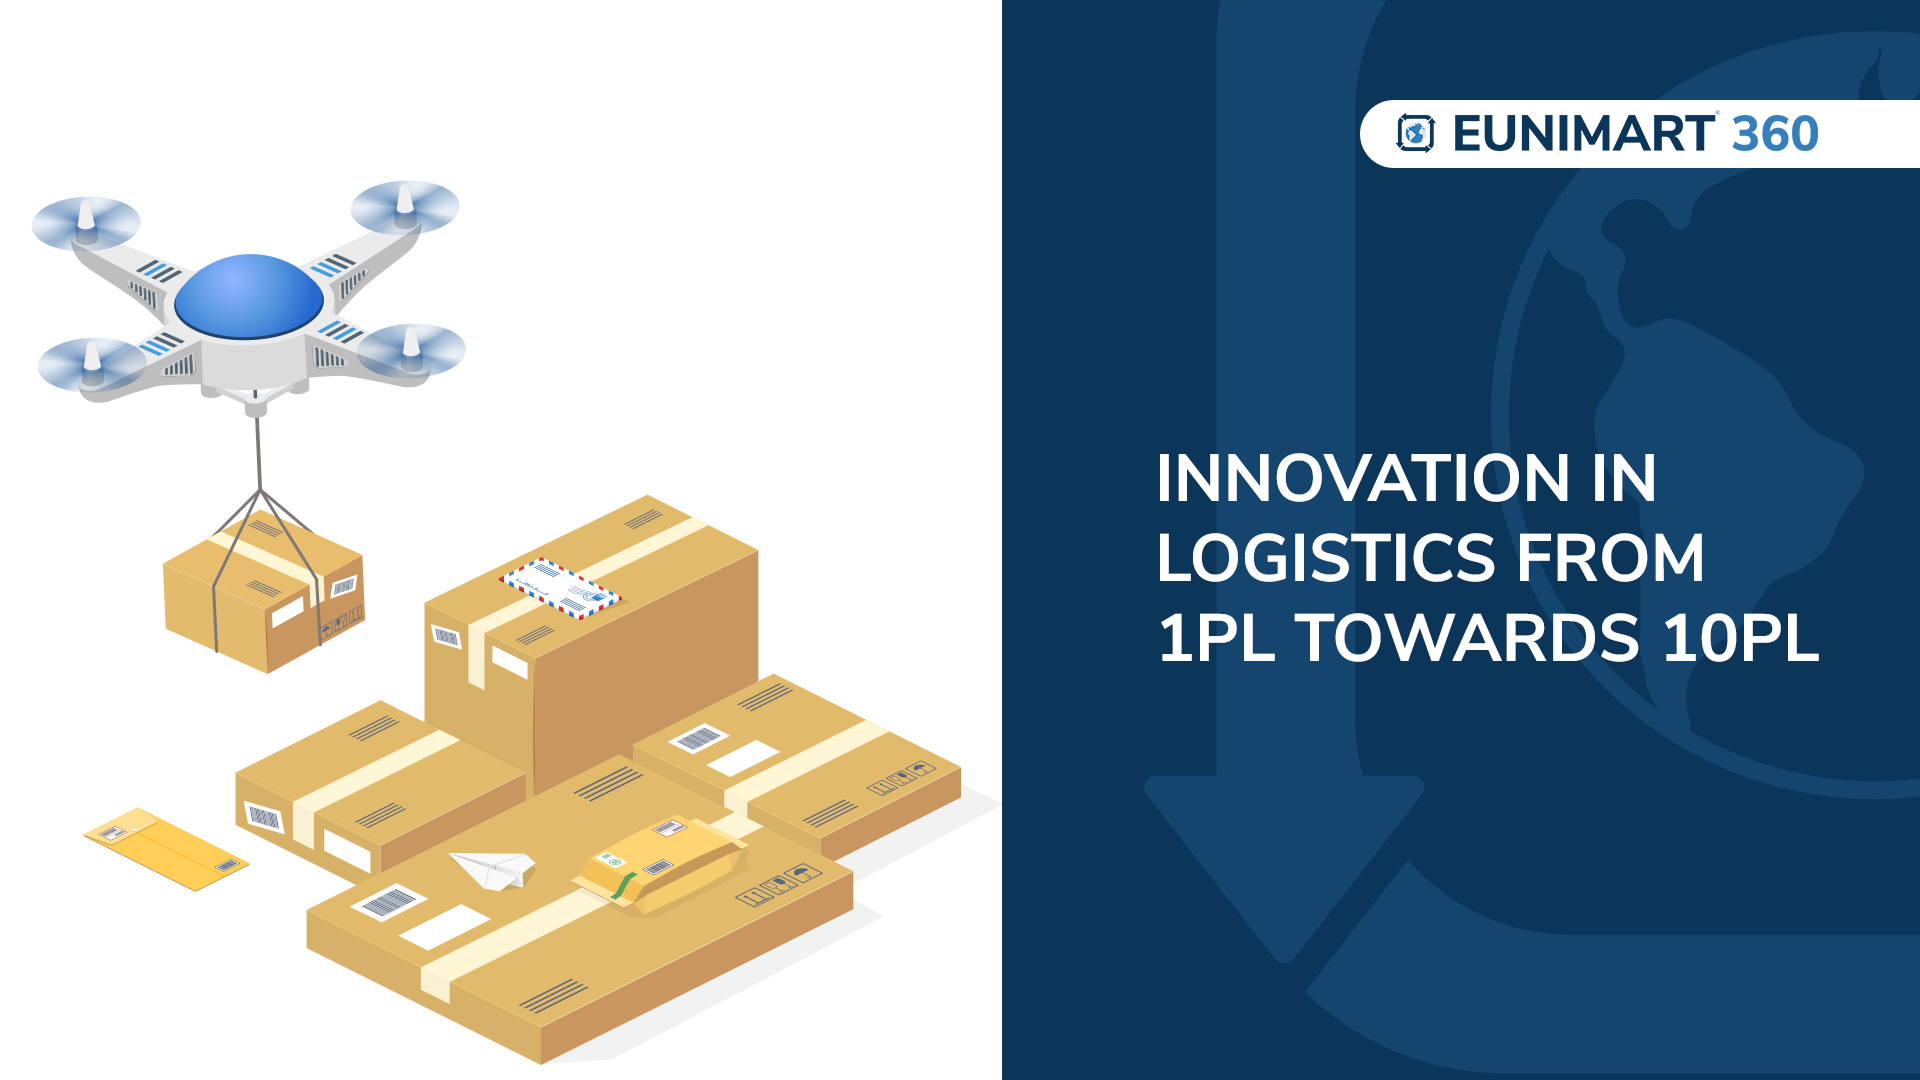 Innovation in Logistics from 1PL towards 10PL